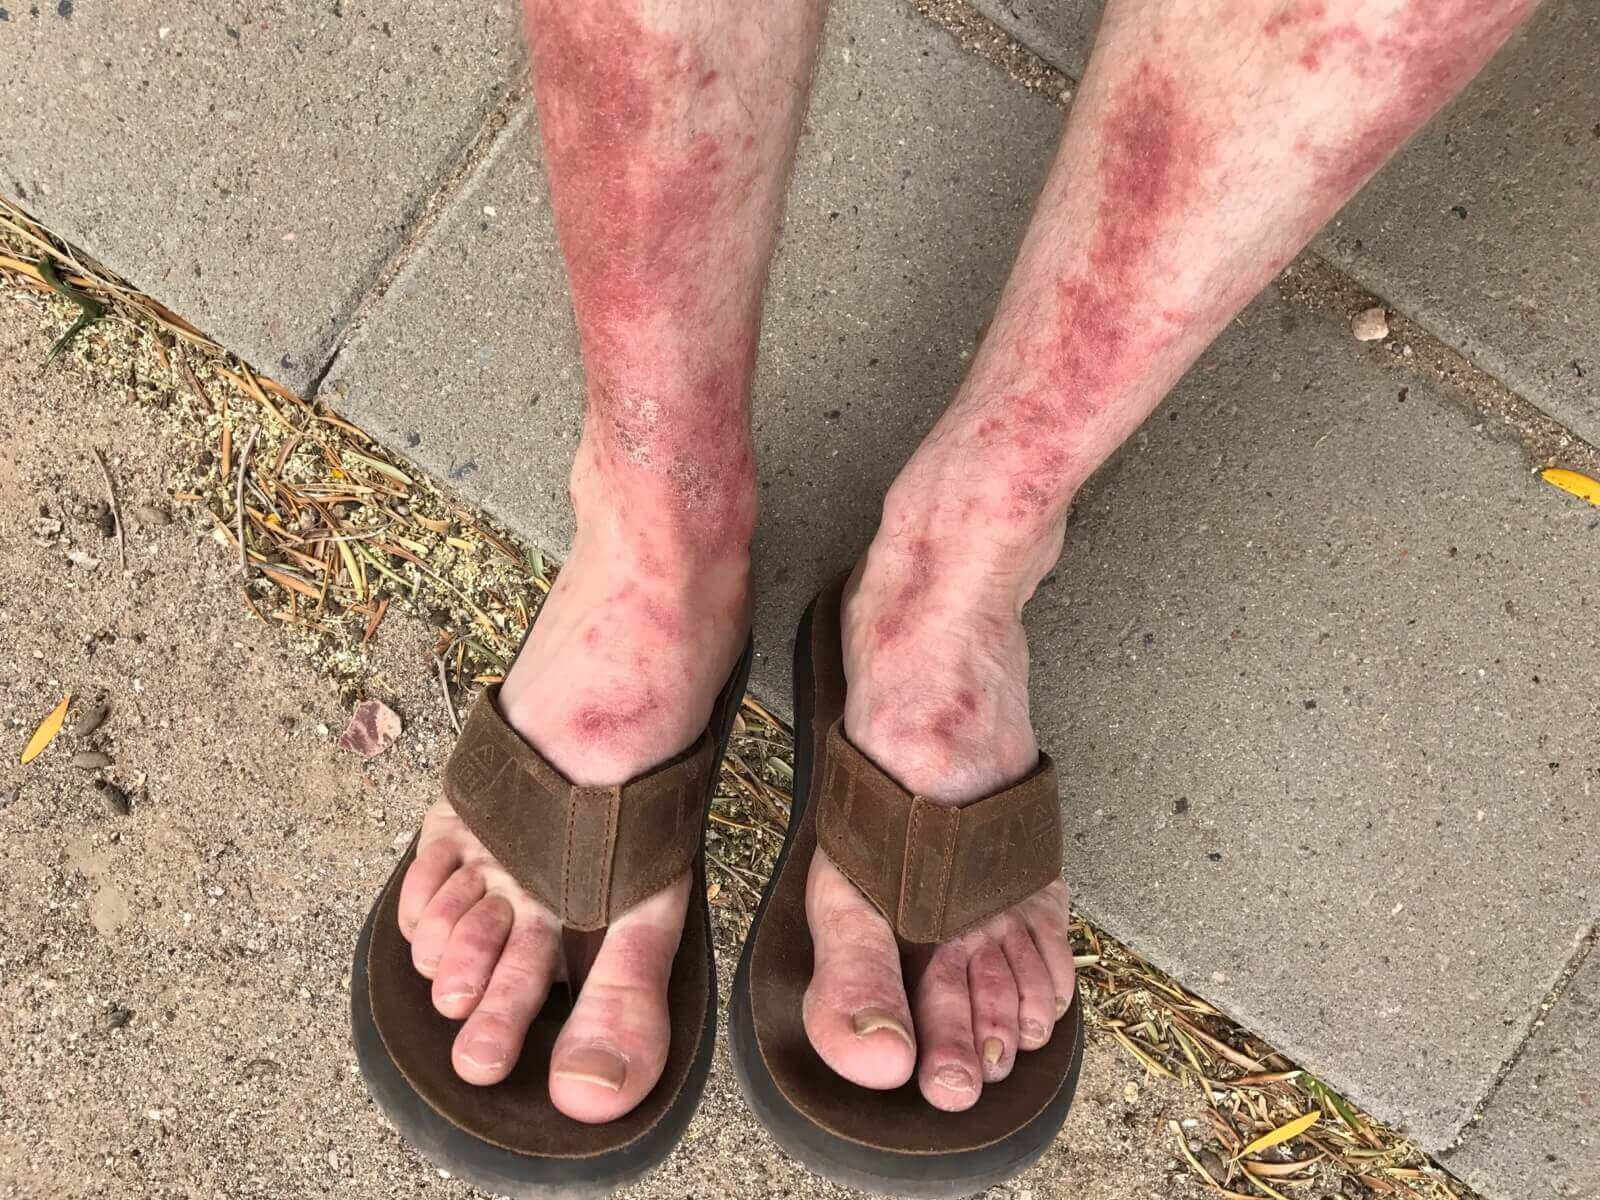 Rash from Poison Ivy